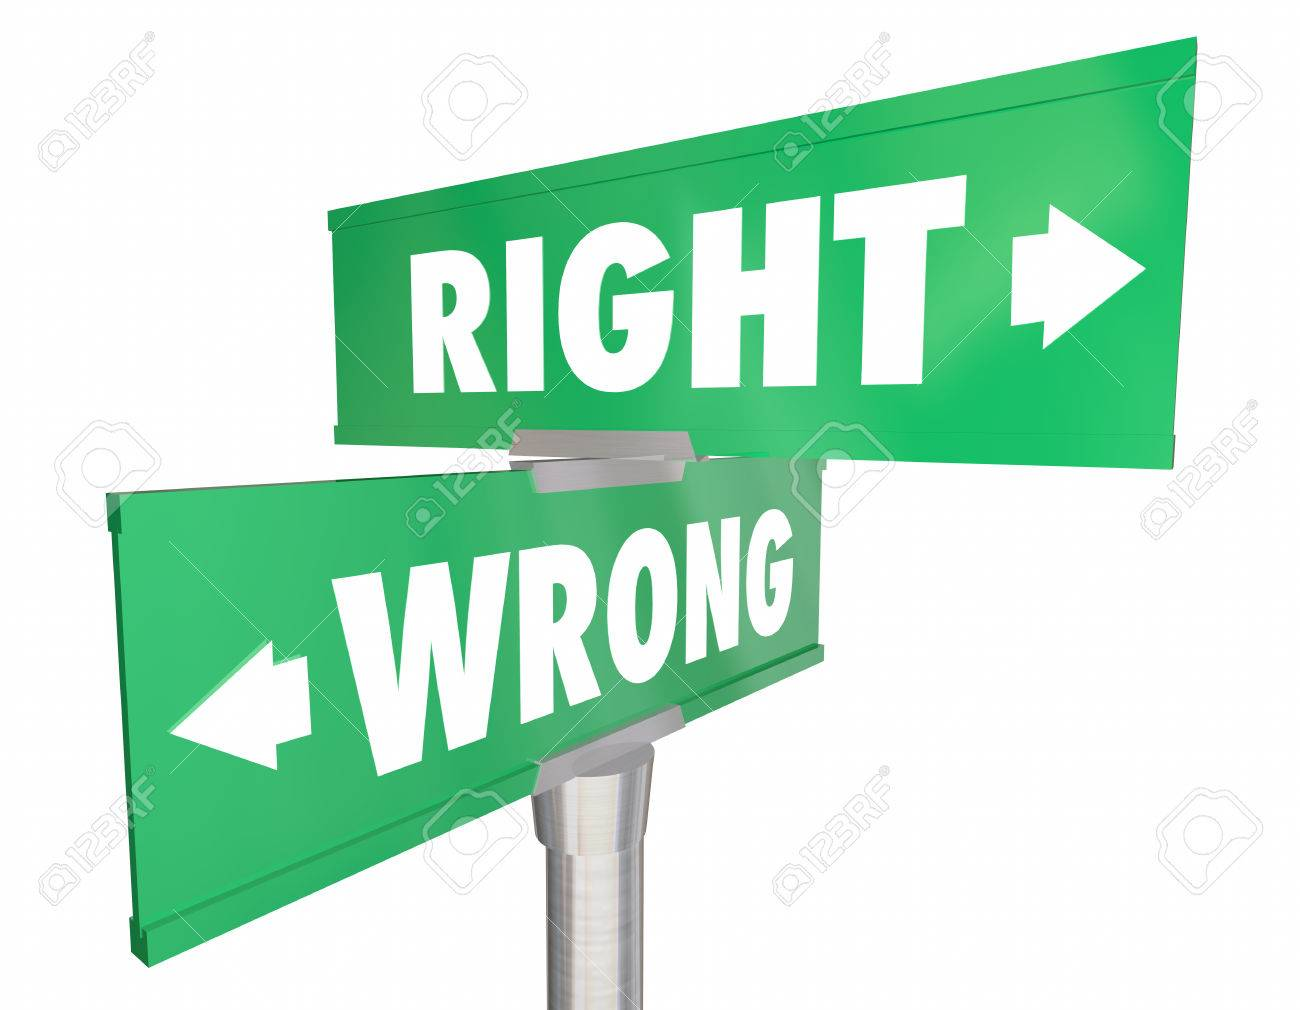 right vs wrong correct way route direction signs 3d illustration